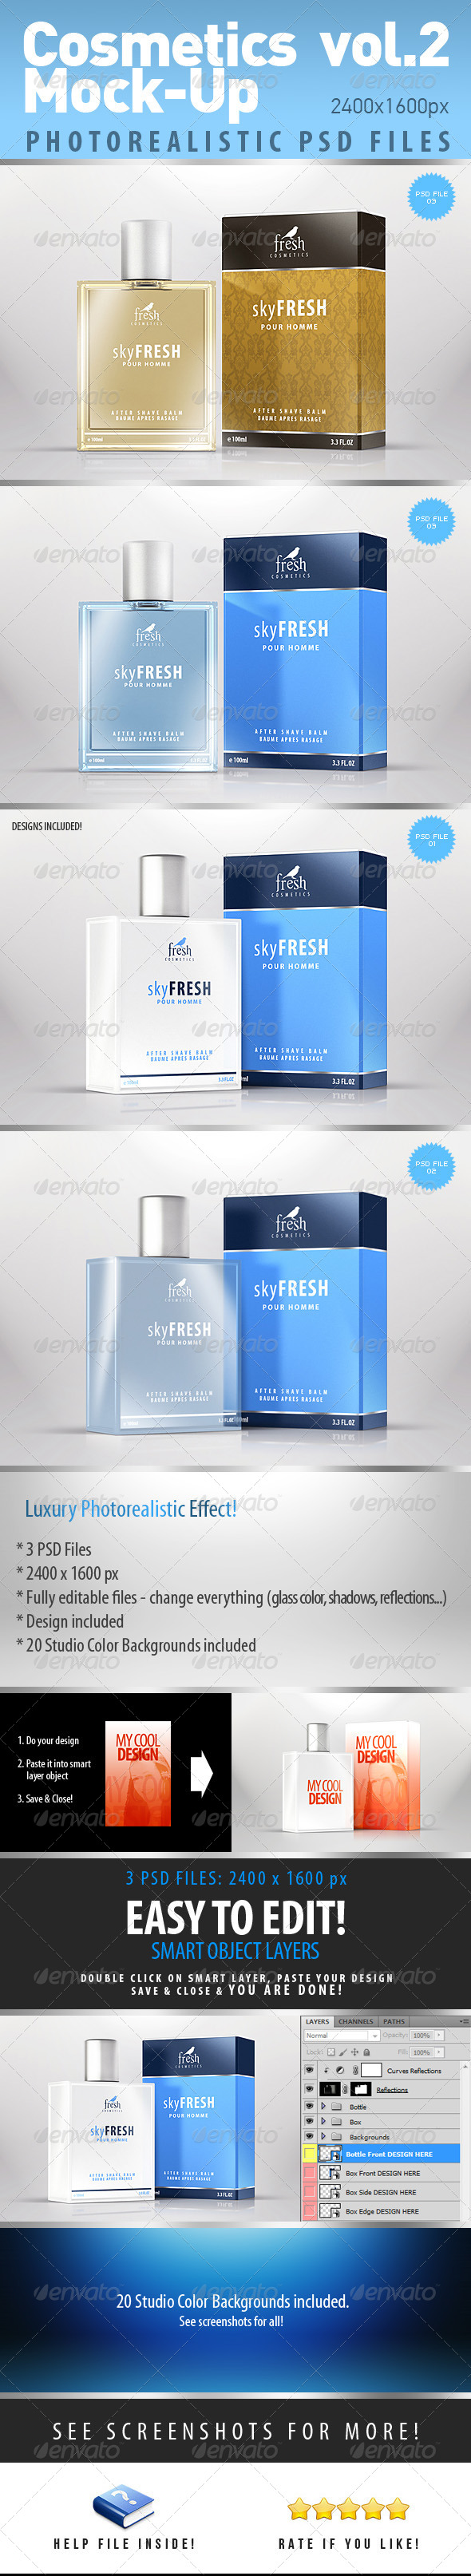 GraphicRiver Cosmetics Photorealistic Mock-Up vol.2 4419514